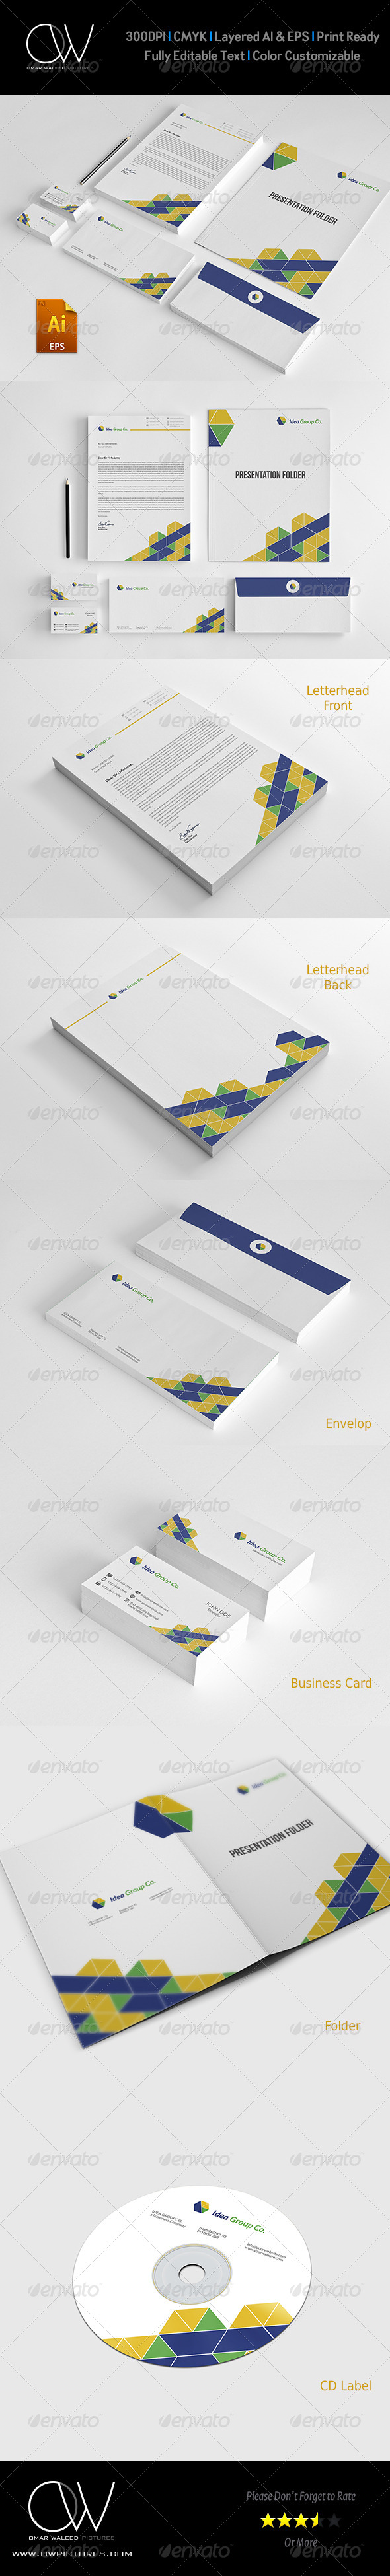 Corporate Stationery Pack Design Template Vol.10